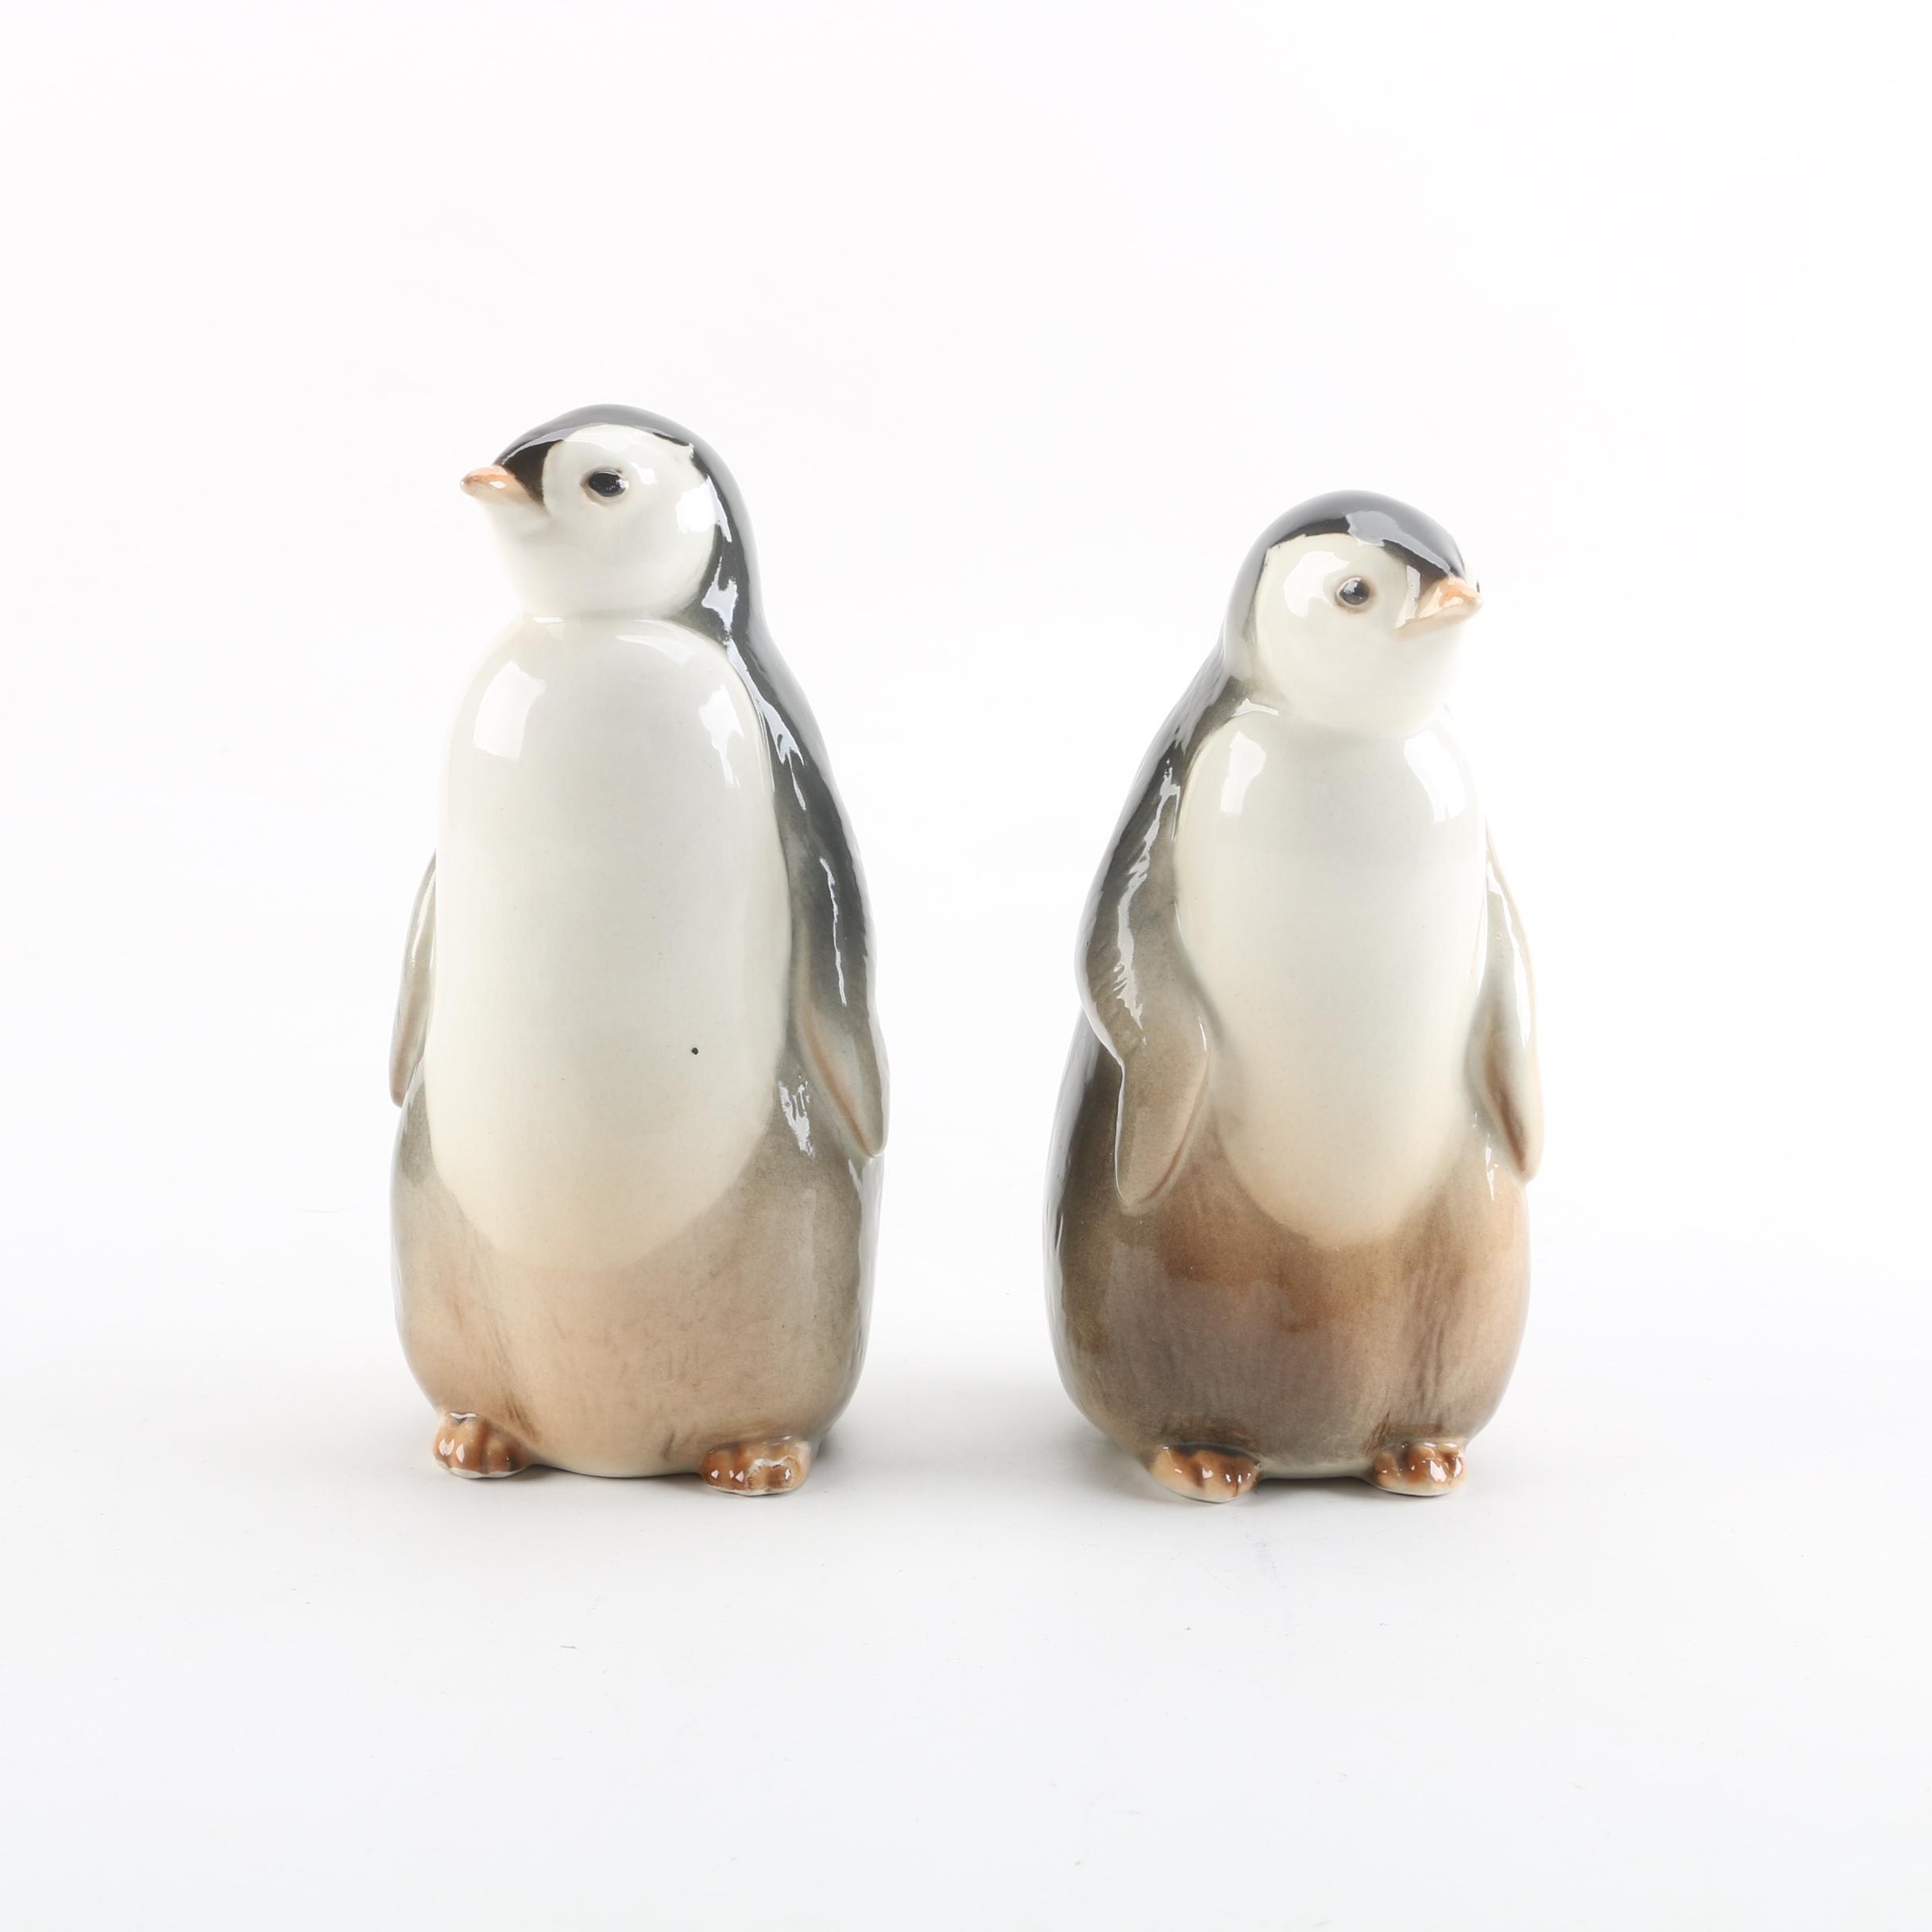 Vintage Lomonosov Russian Porcelain Penguin Figurines